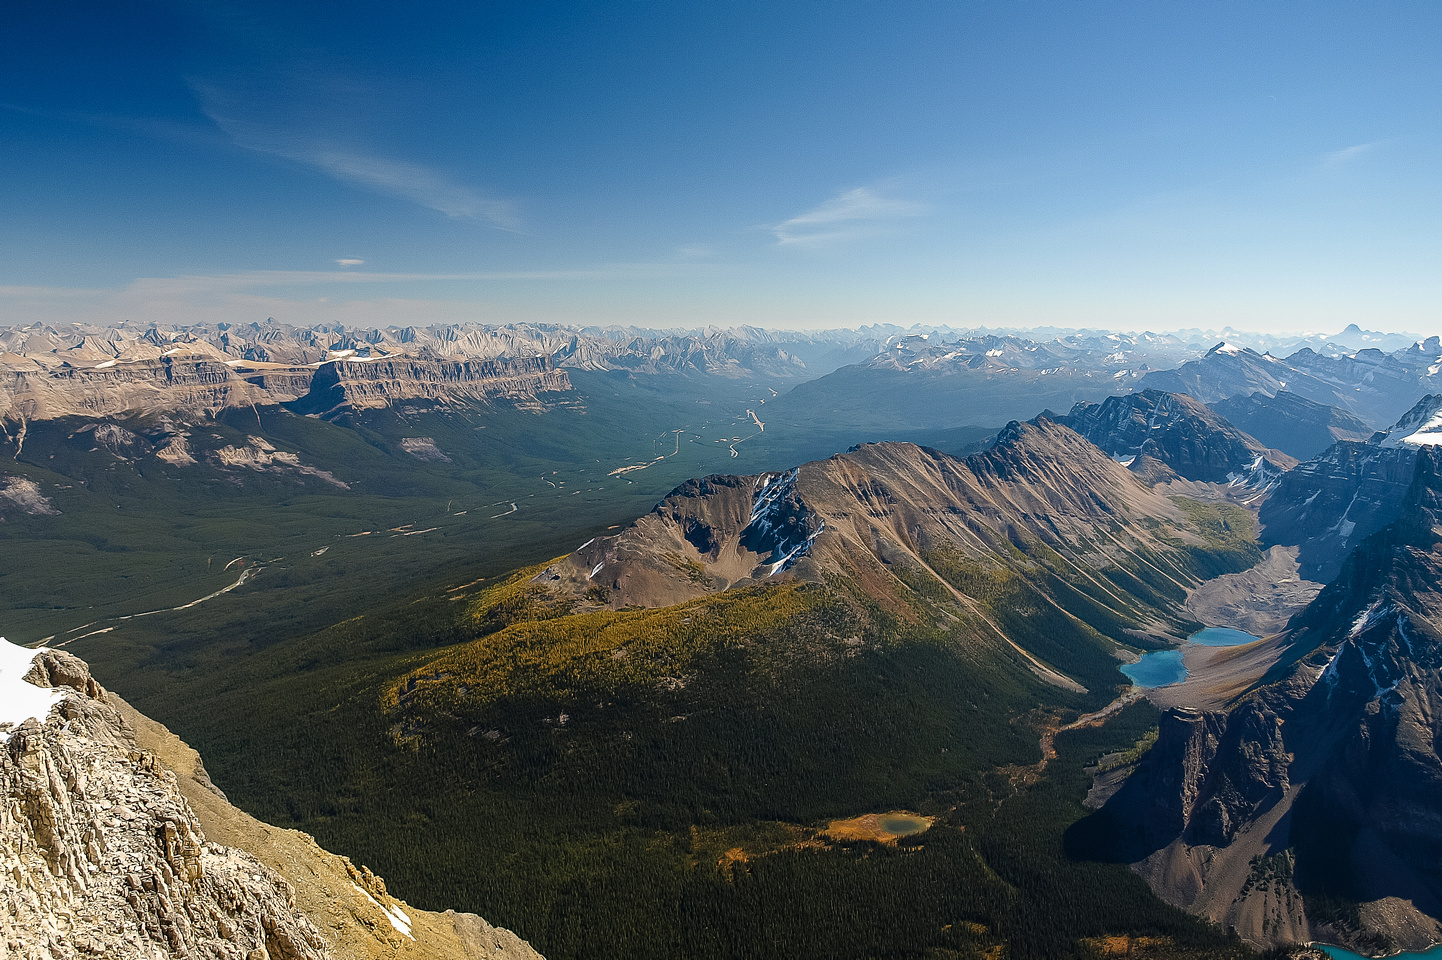 A great view of Panorama Ridge and Consolation Lakes.